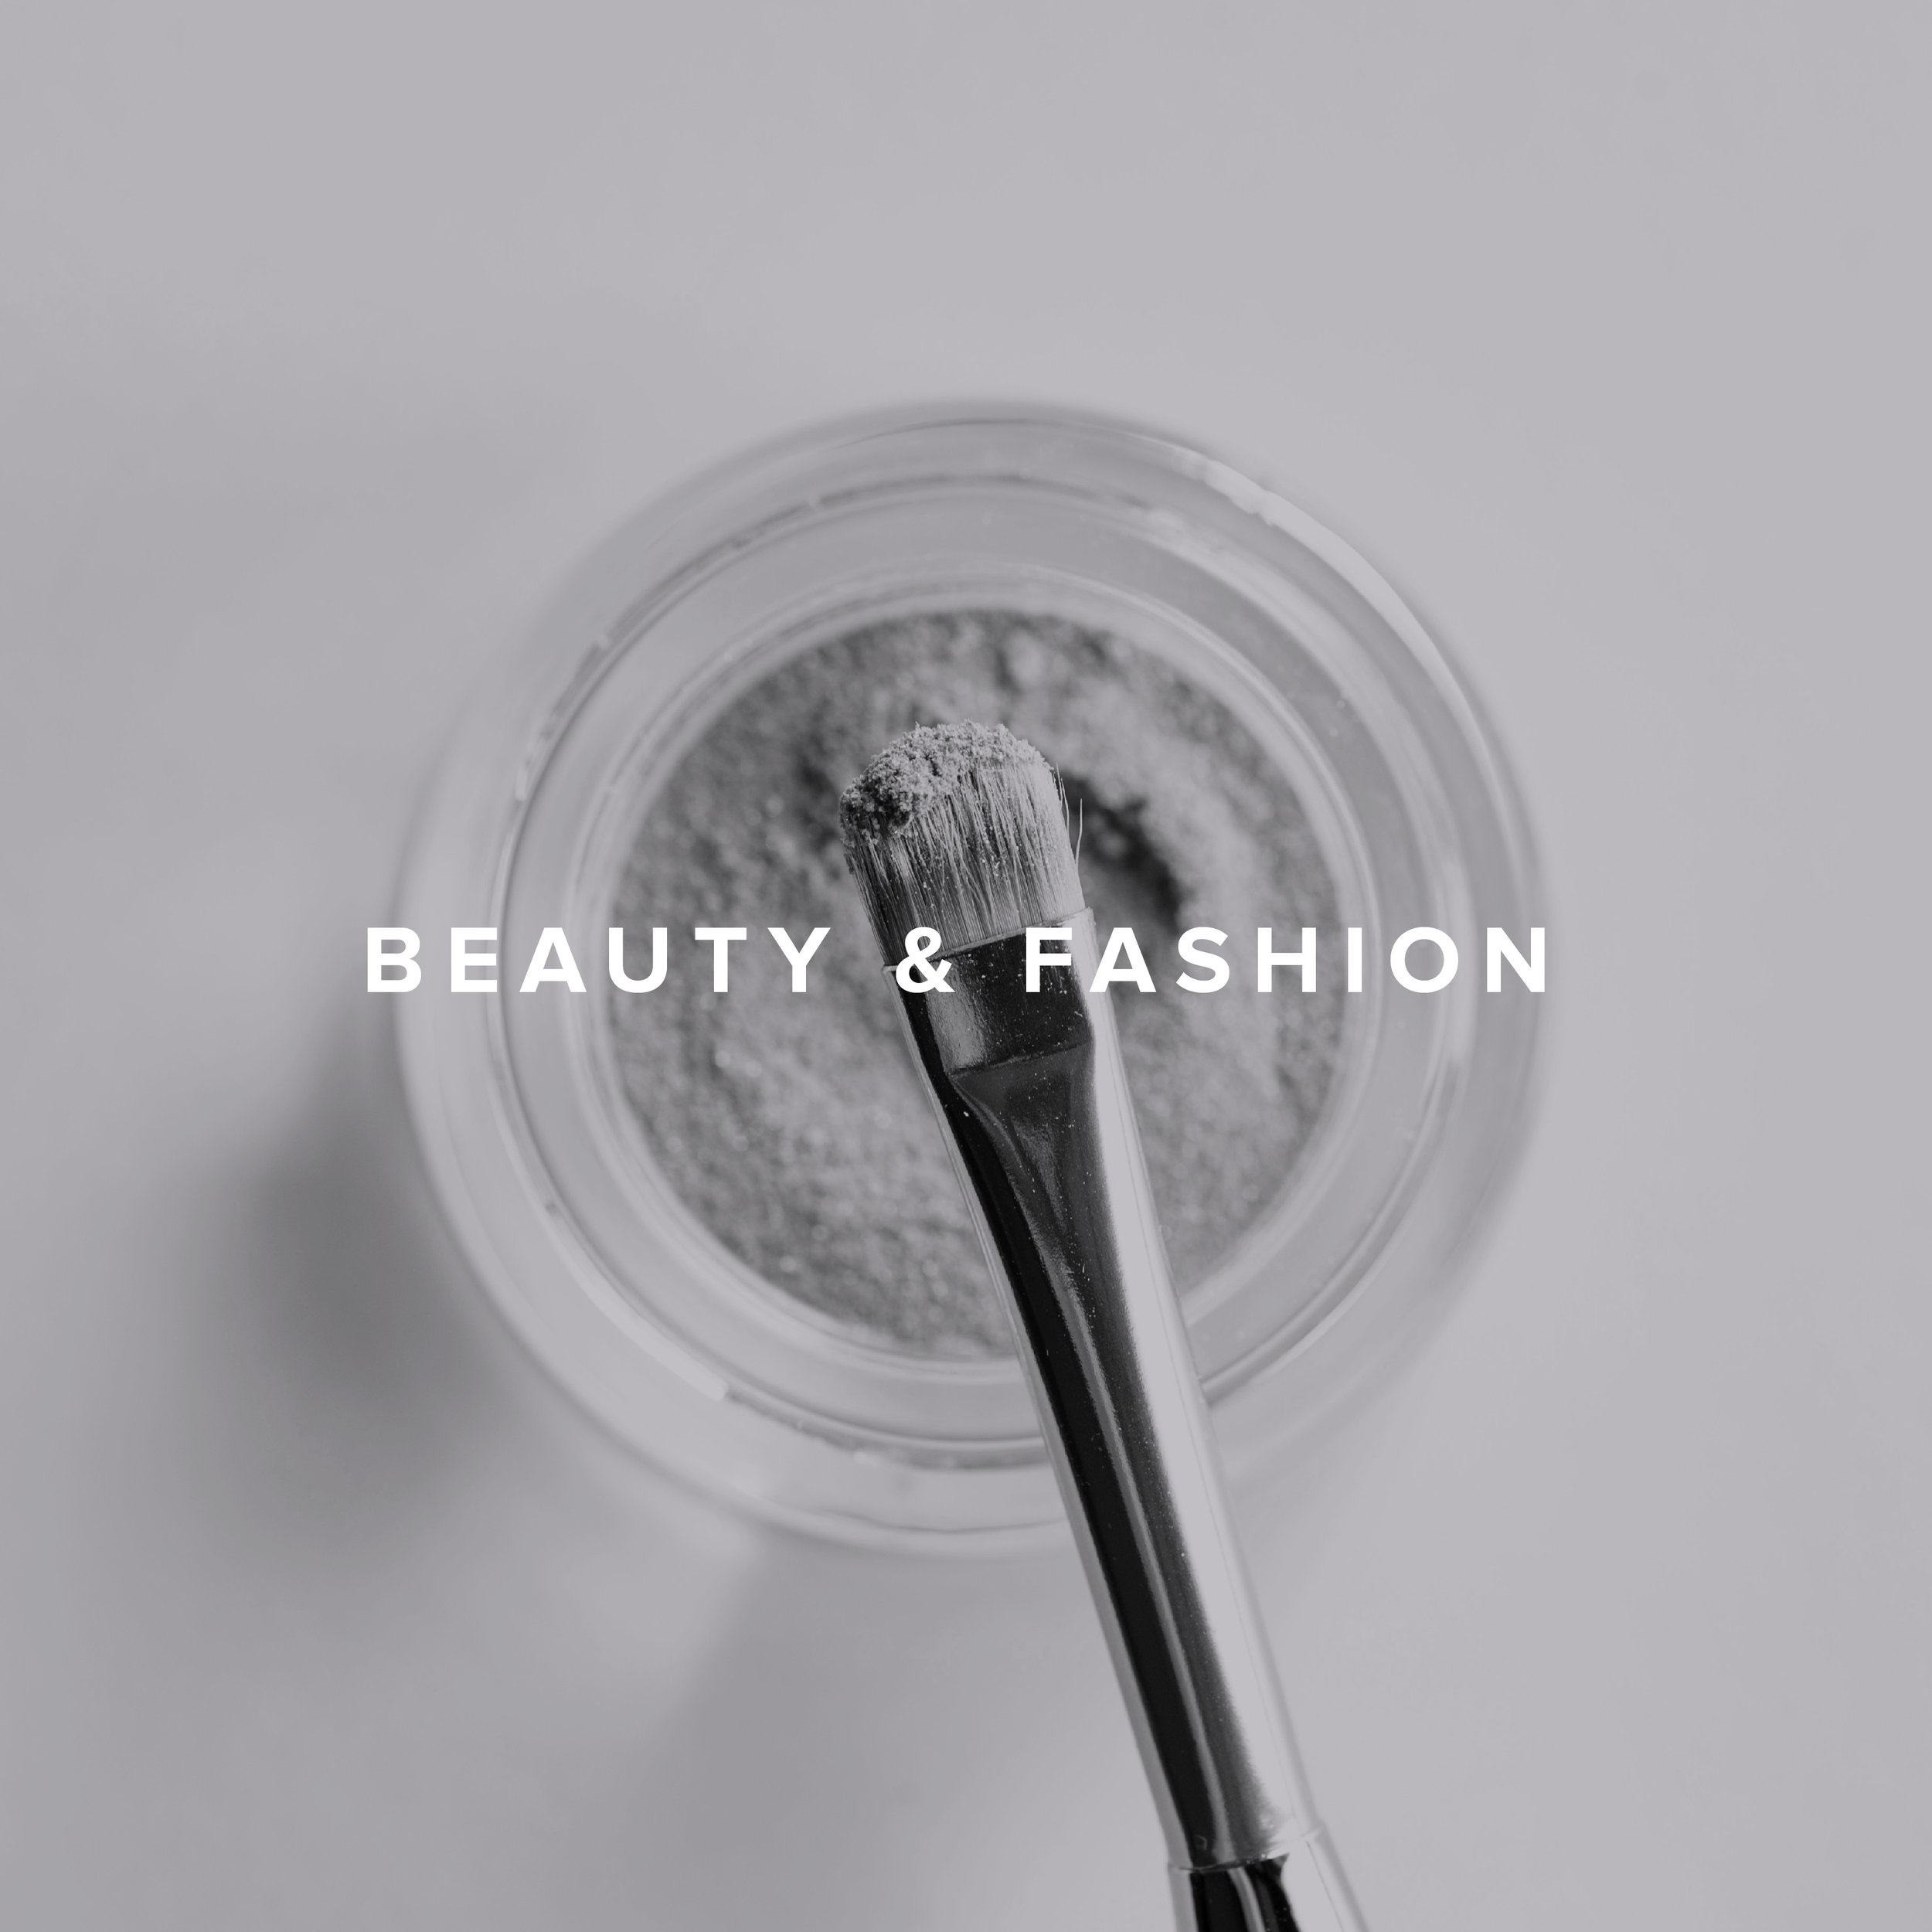 A Bold Lip + Bomber jacket. We get fashion and beauty; our results reflect that.